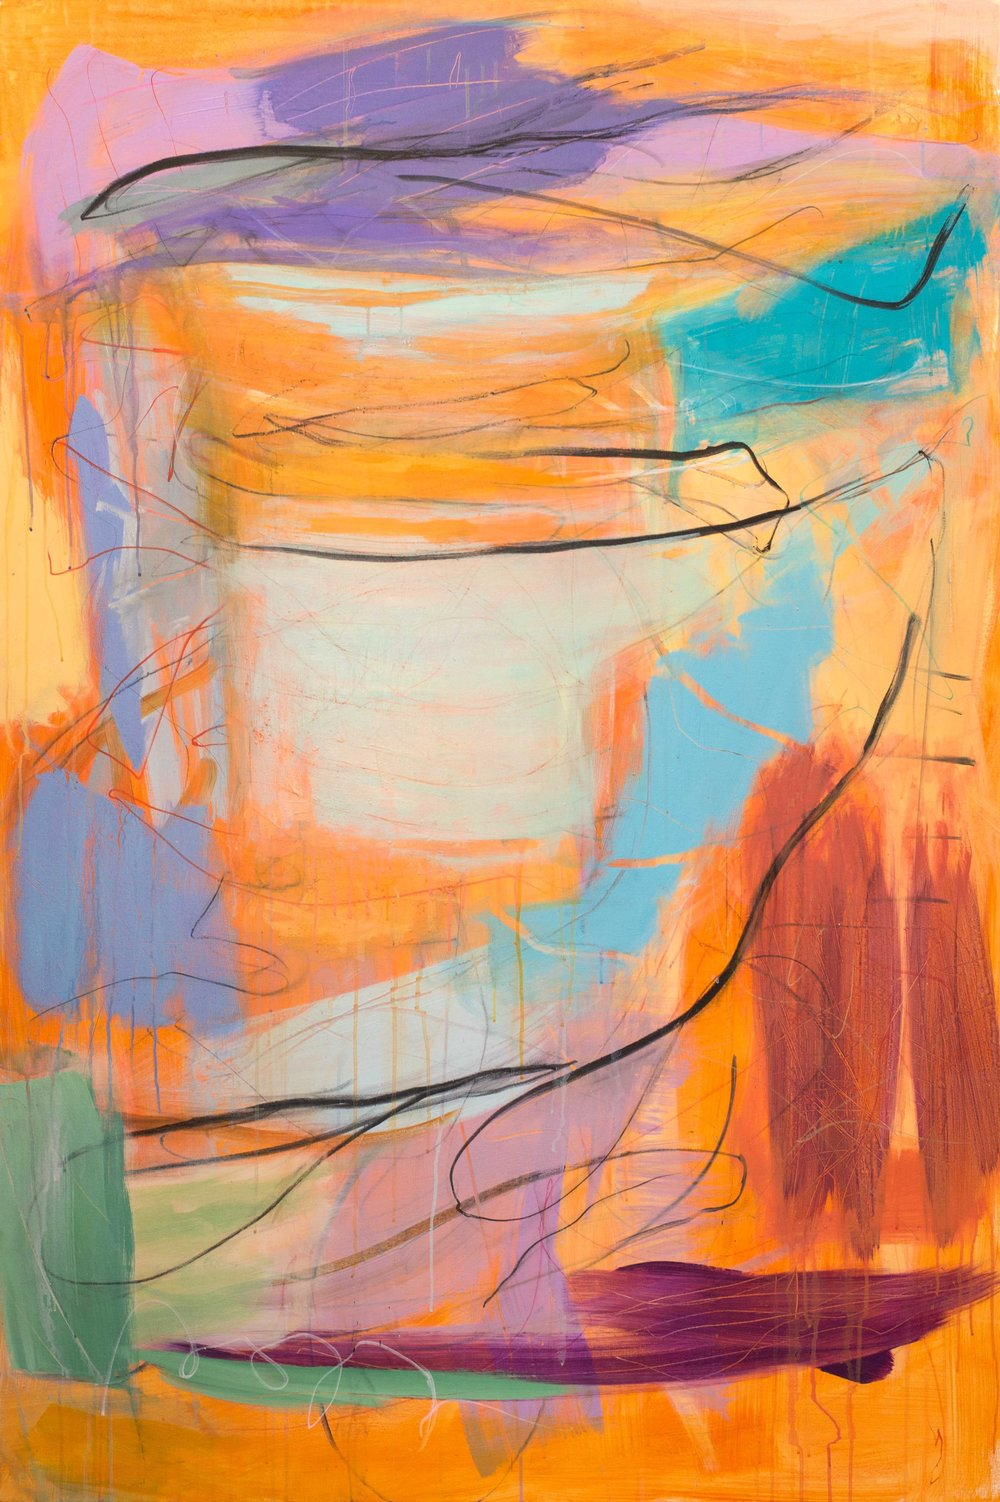 'Seworgan' (180x120cm) £3,450.00.Visit the  shop  on our website to purchase.